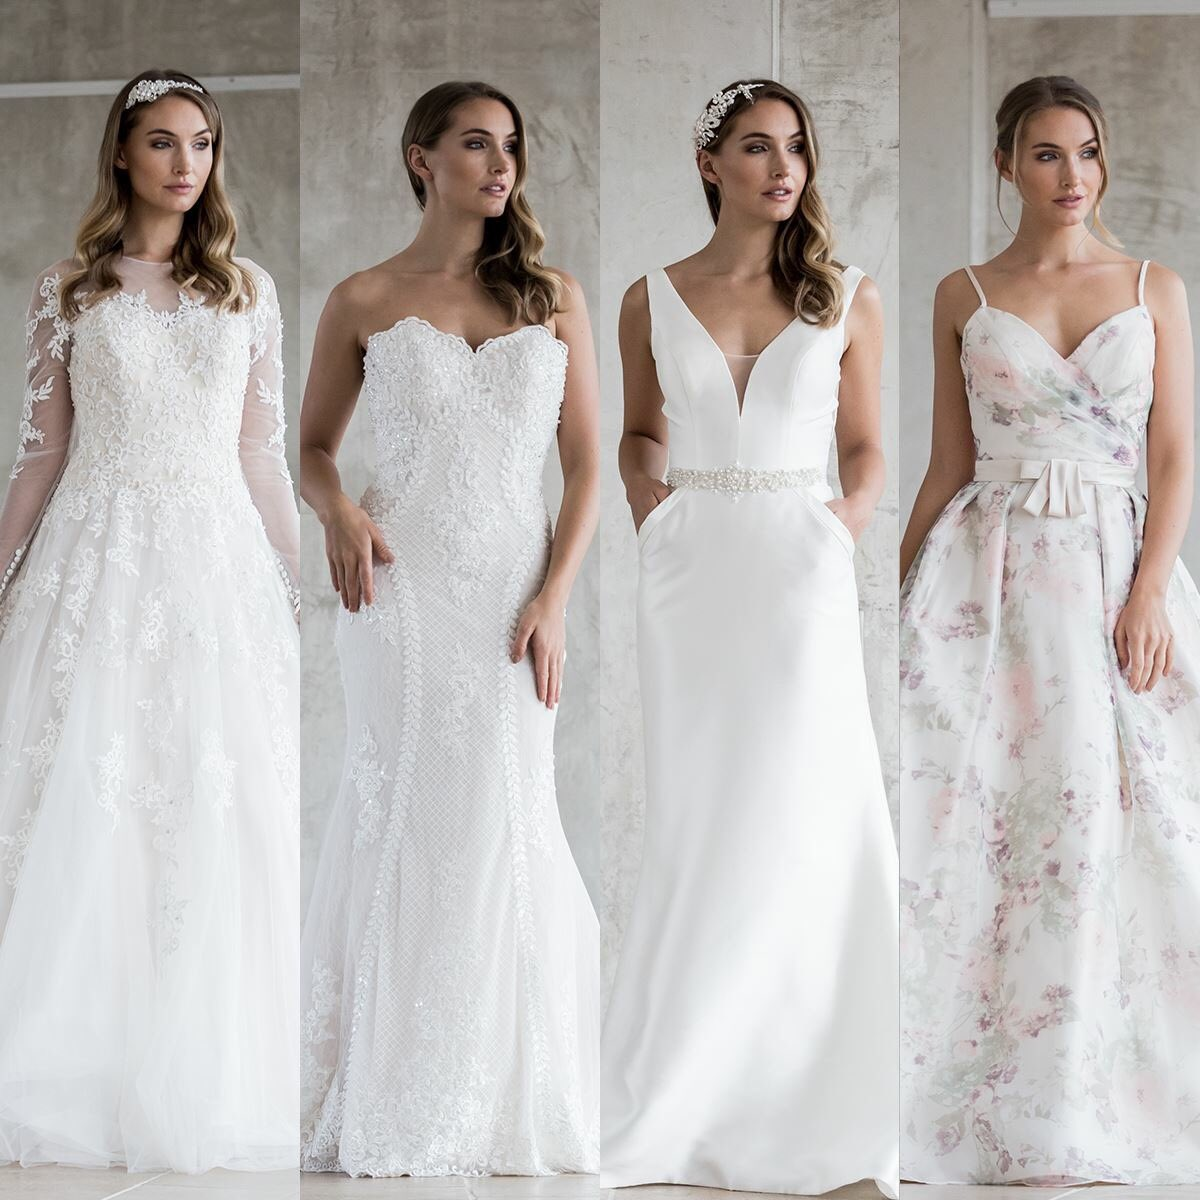 Whats your VK Style? Sleeves, Dramatic, Elegant or Pretty?  Don't forget to enter to win one of our fantastic gowns  Find out more here: https://t.co/PGkSZN4aTp https://t.co/bVNlz94GgF